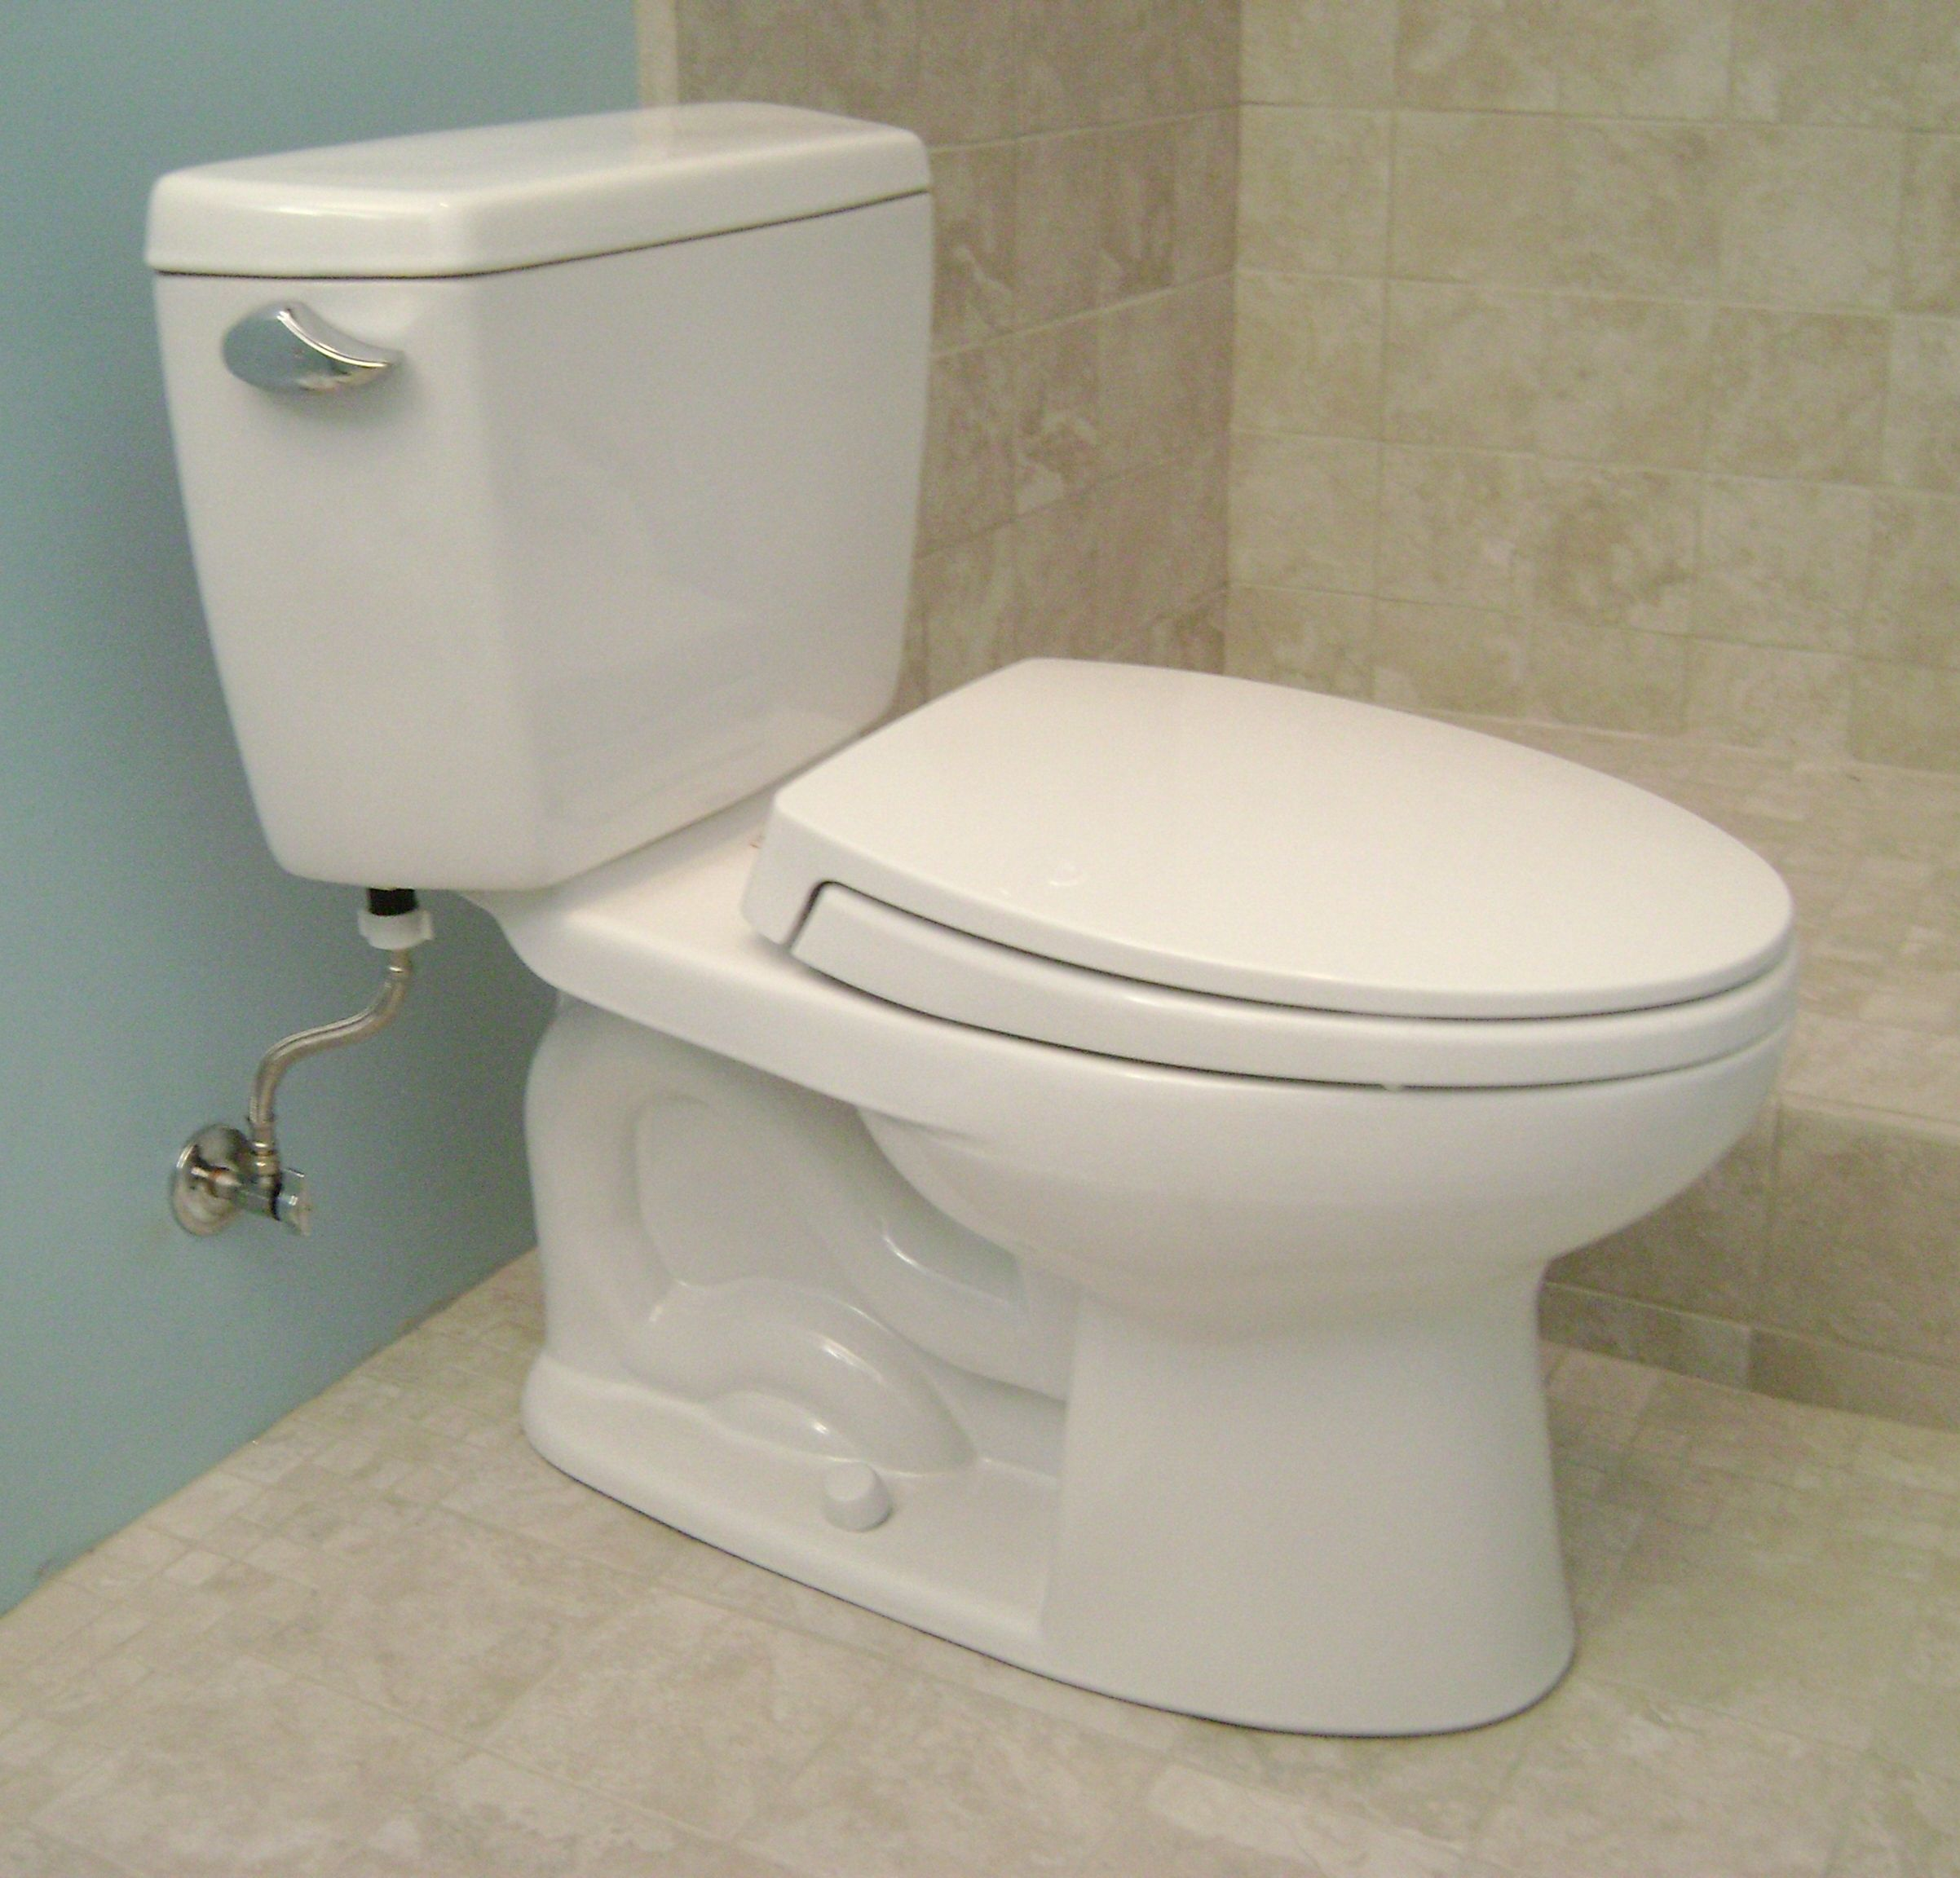 Stop Eliminating Foods From Your Diet That Is Not The Answer Instead Join Http Modernayurvedaliving Com Attend Worksho Toto Toilet Bathroom Toilets Toilet